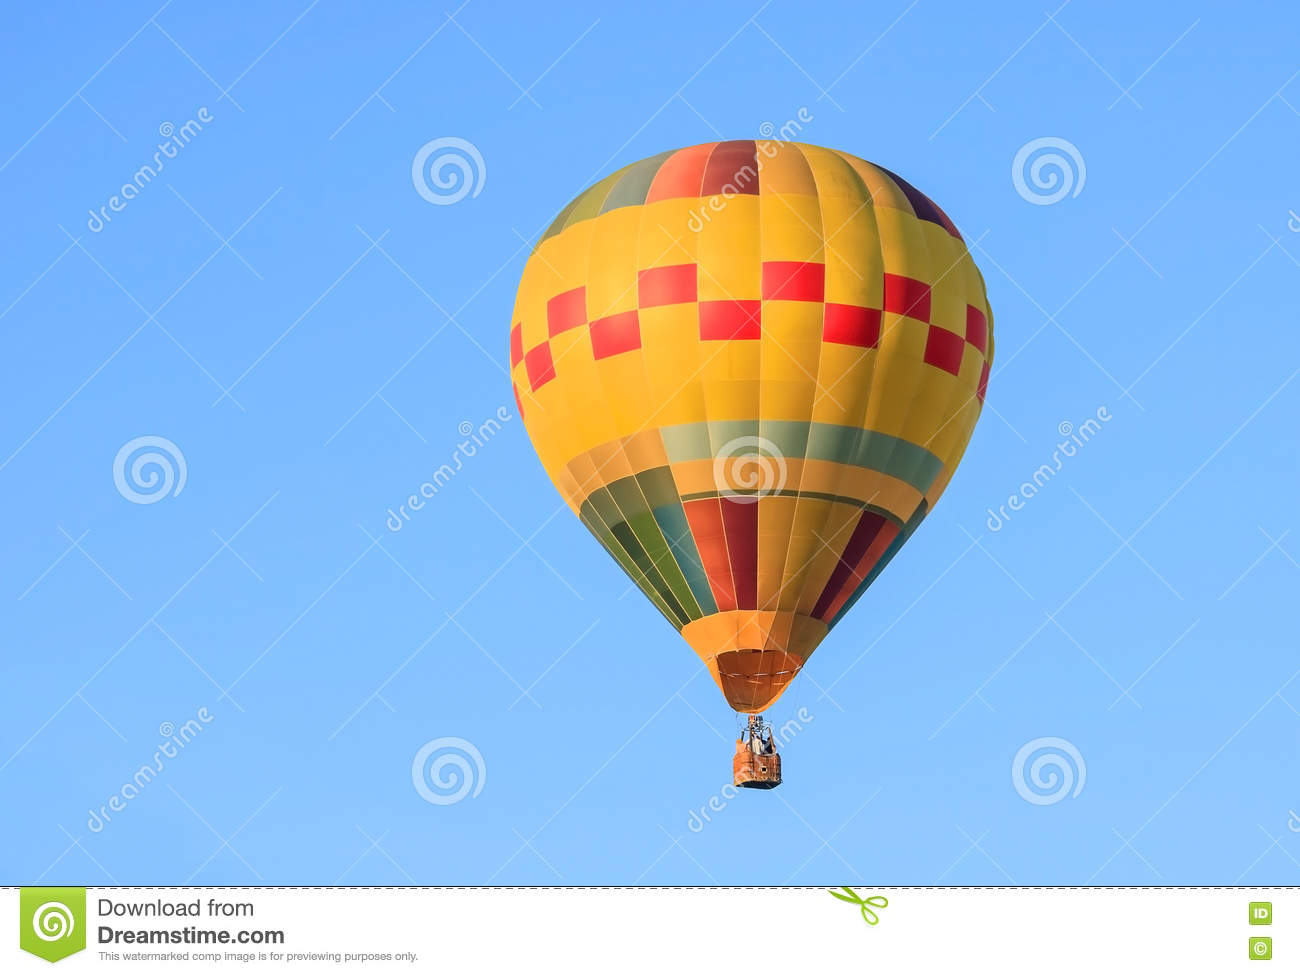 Balloon and sky blue